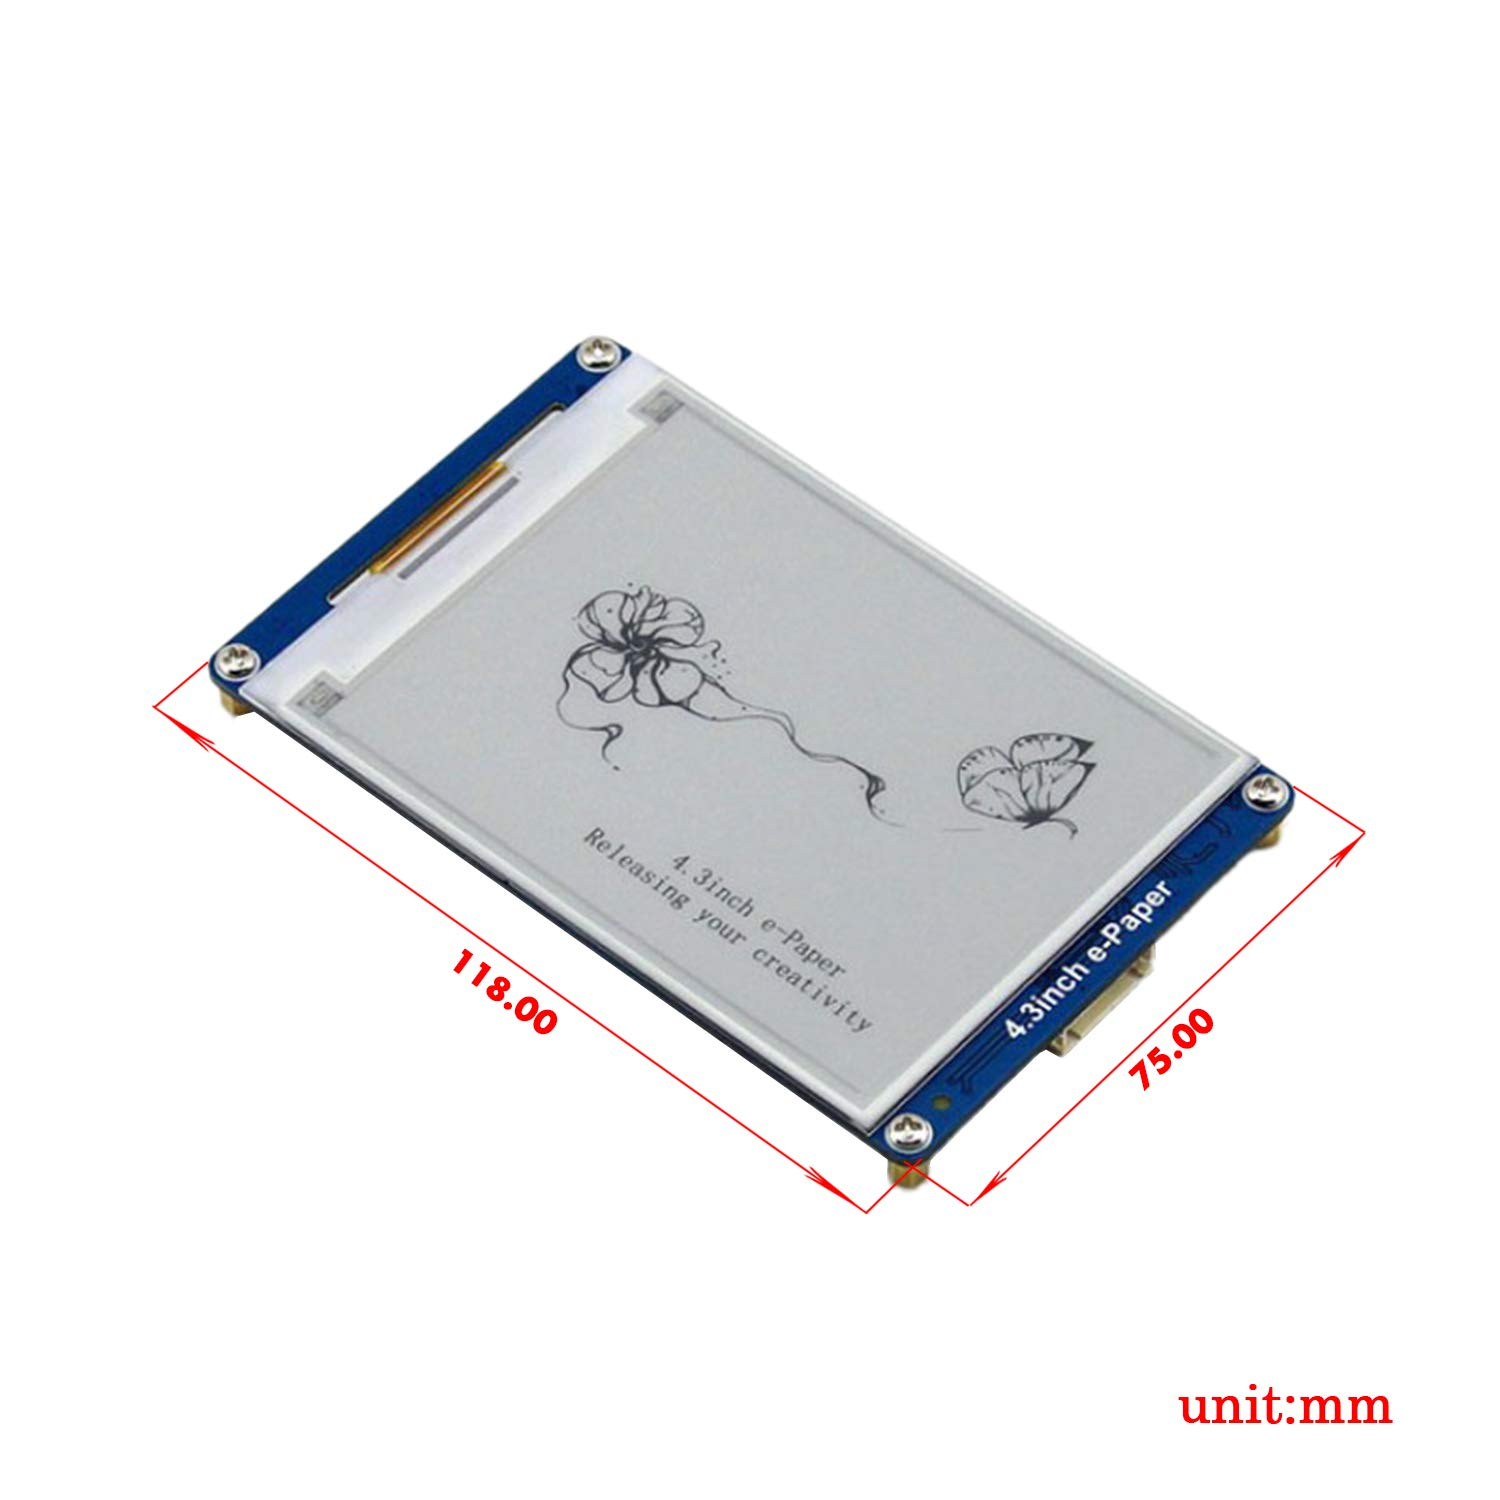 CQRobot E-Ink Display Module, 4.3 inch E-Paper Uart Module, Supports 32, 48 and 64 Dot Matrix GBK Chinese Fonts and English Fonts Serial Interface, 800x600 Resolution,Built-in 128Mb Nandflash. by CQRobot (Image #1)